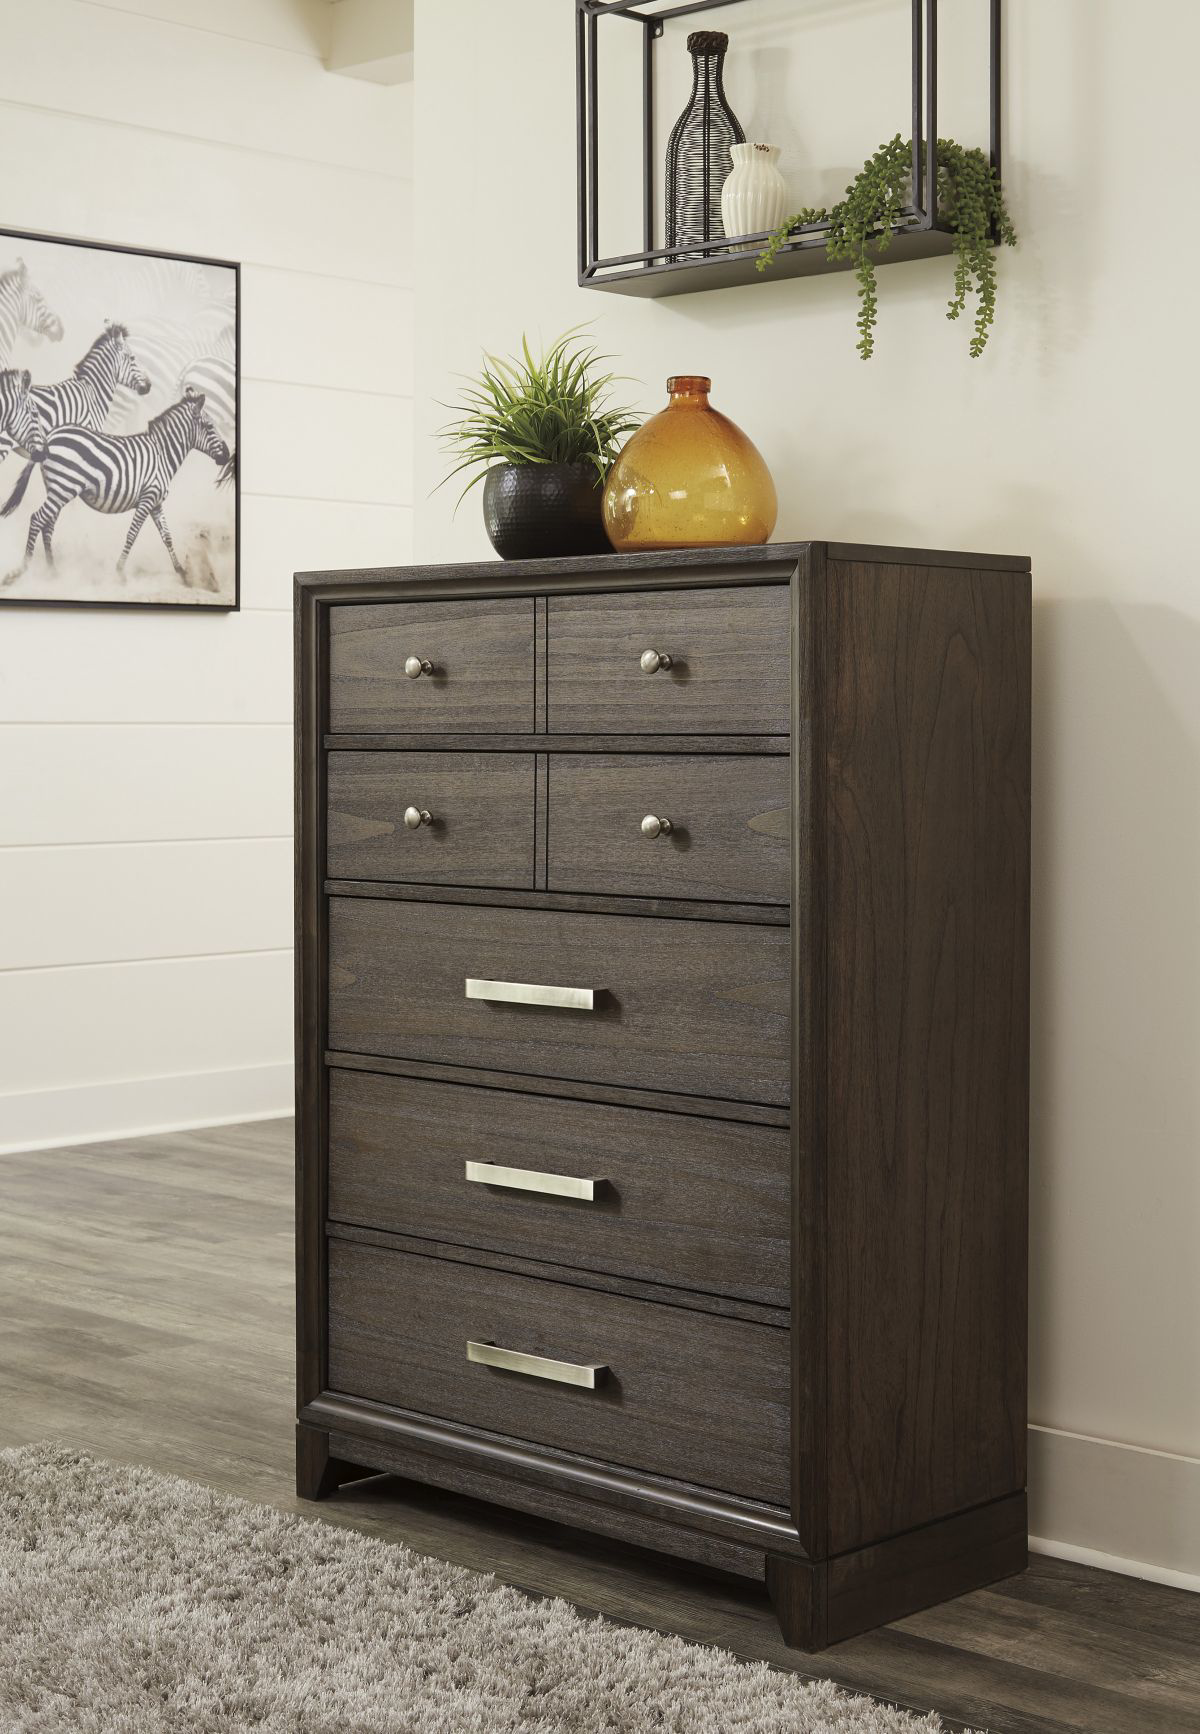 Picture of Brueban Chest of Drawers